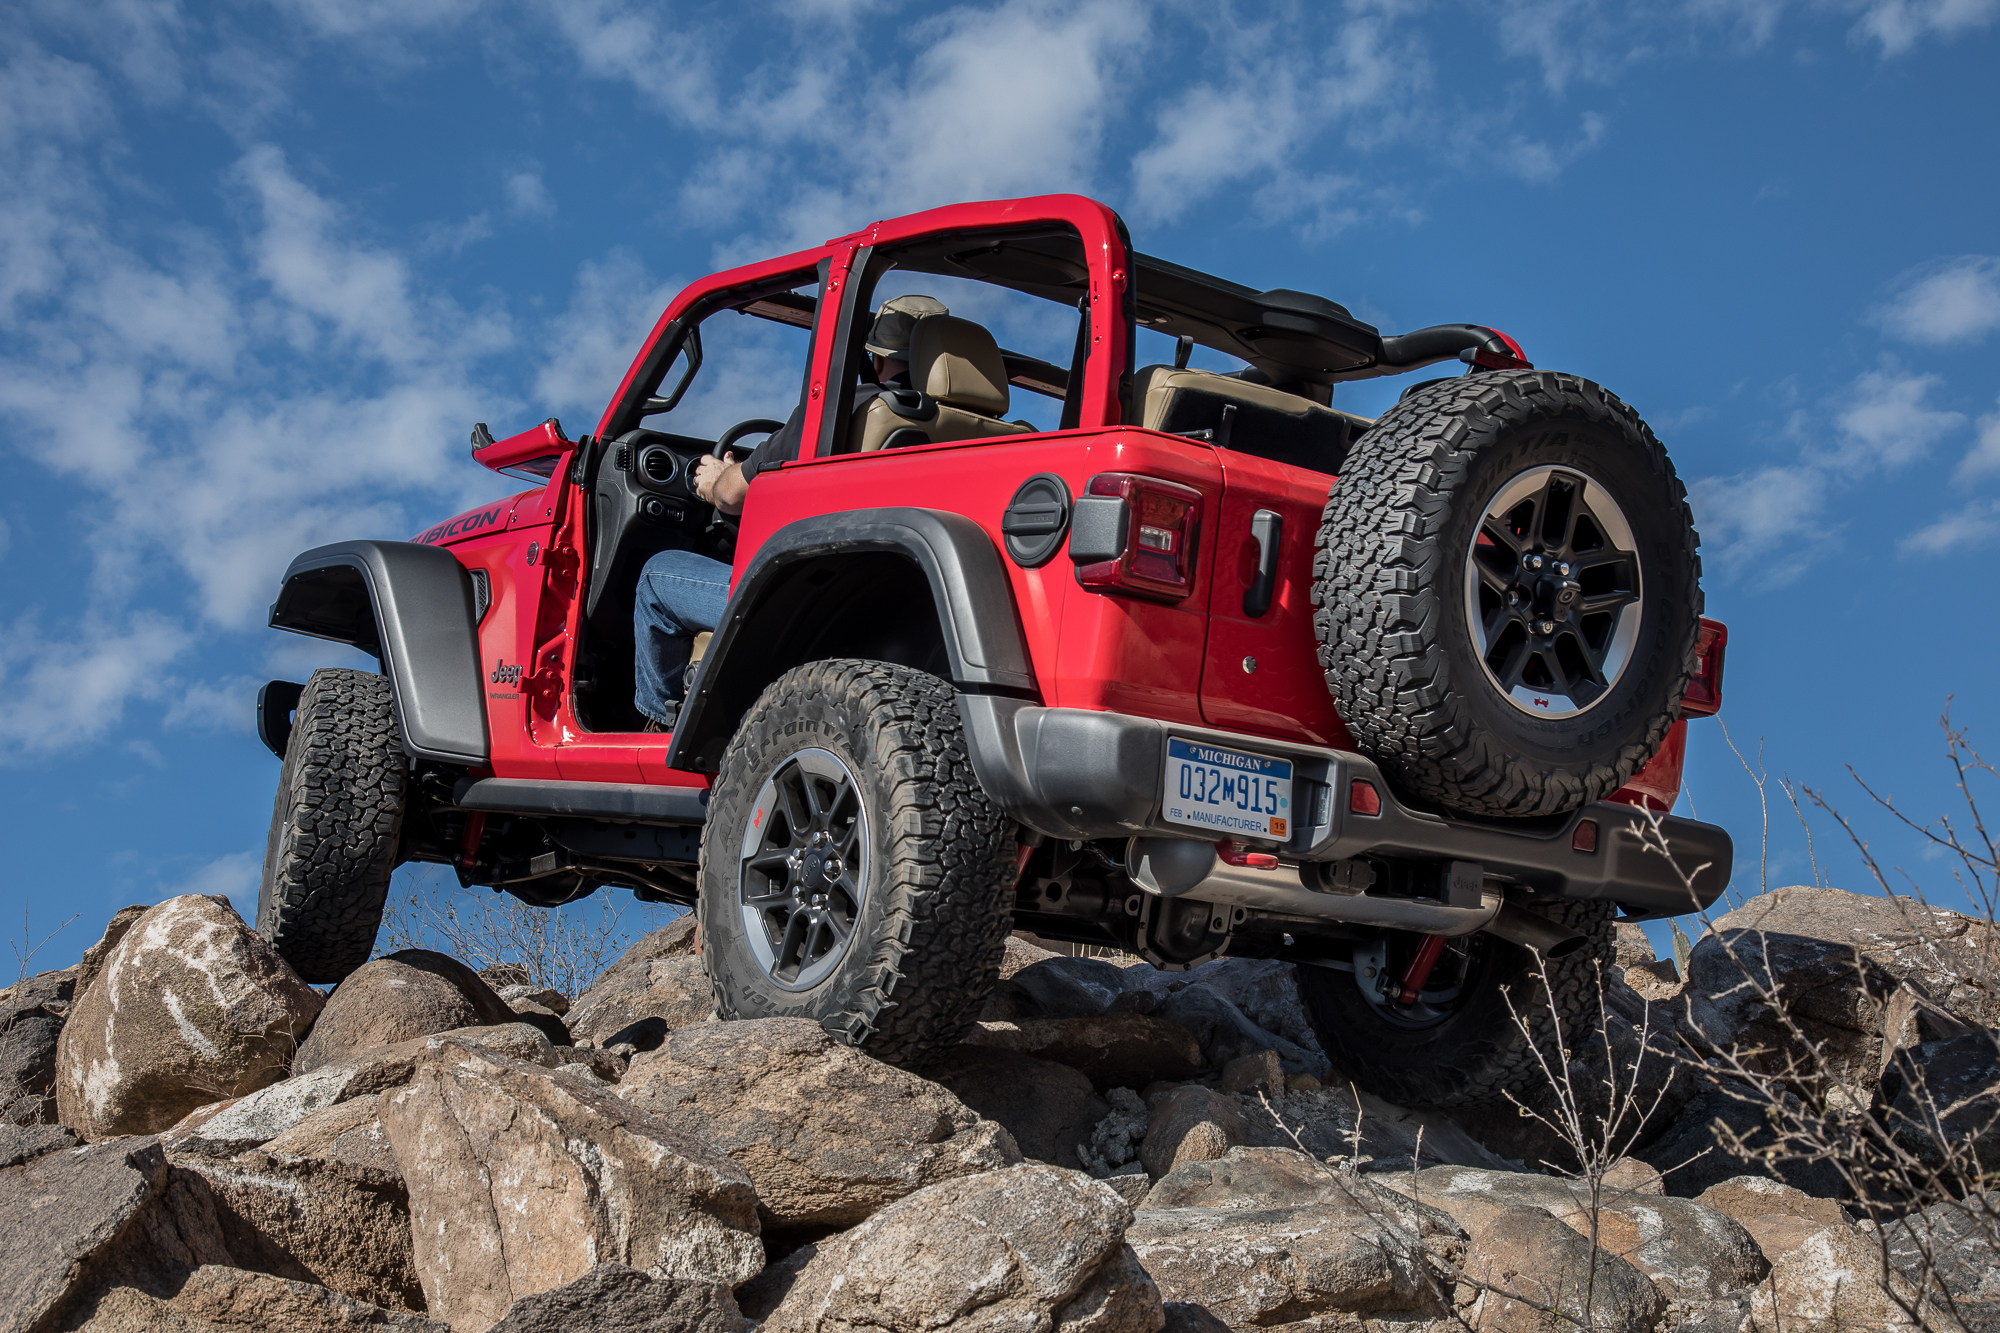 41-jeep-wrangler-2018-dynamic-exterior-off-road-rear-angle.jpg